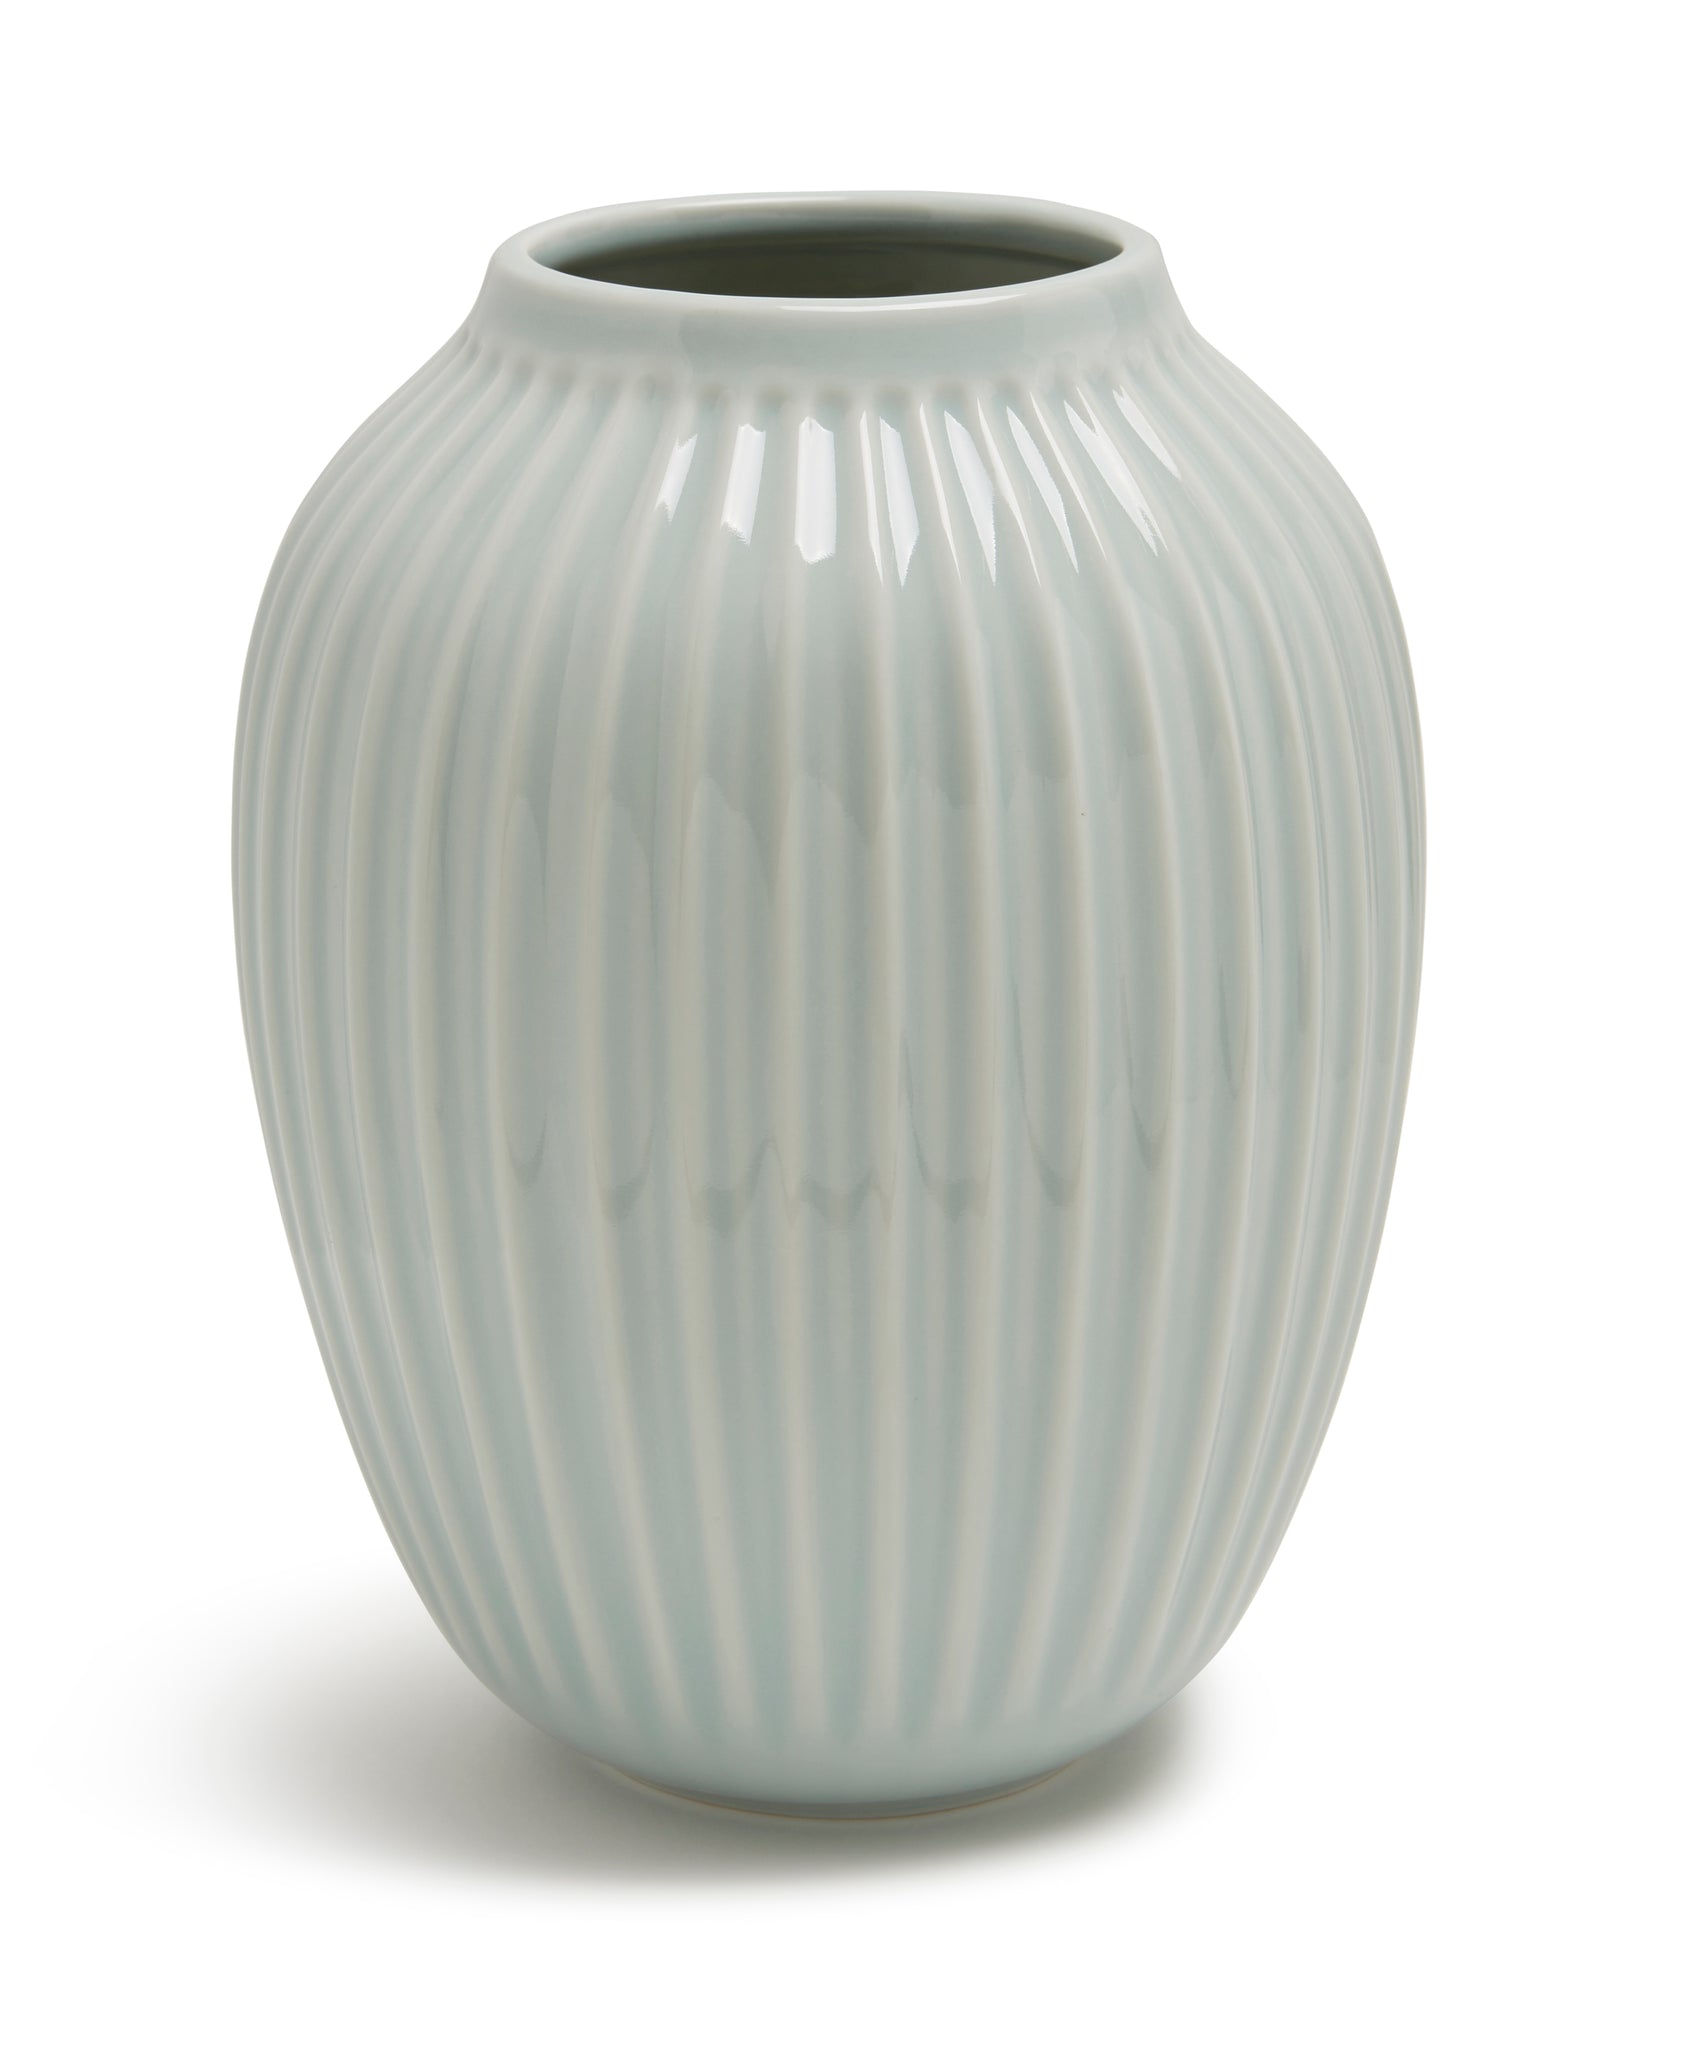 Hammershøi Vase 250mm (Mint) by Kähler